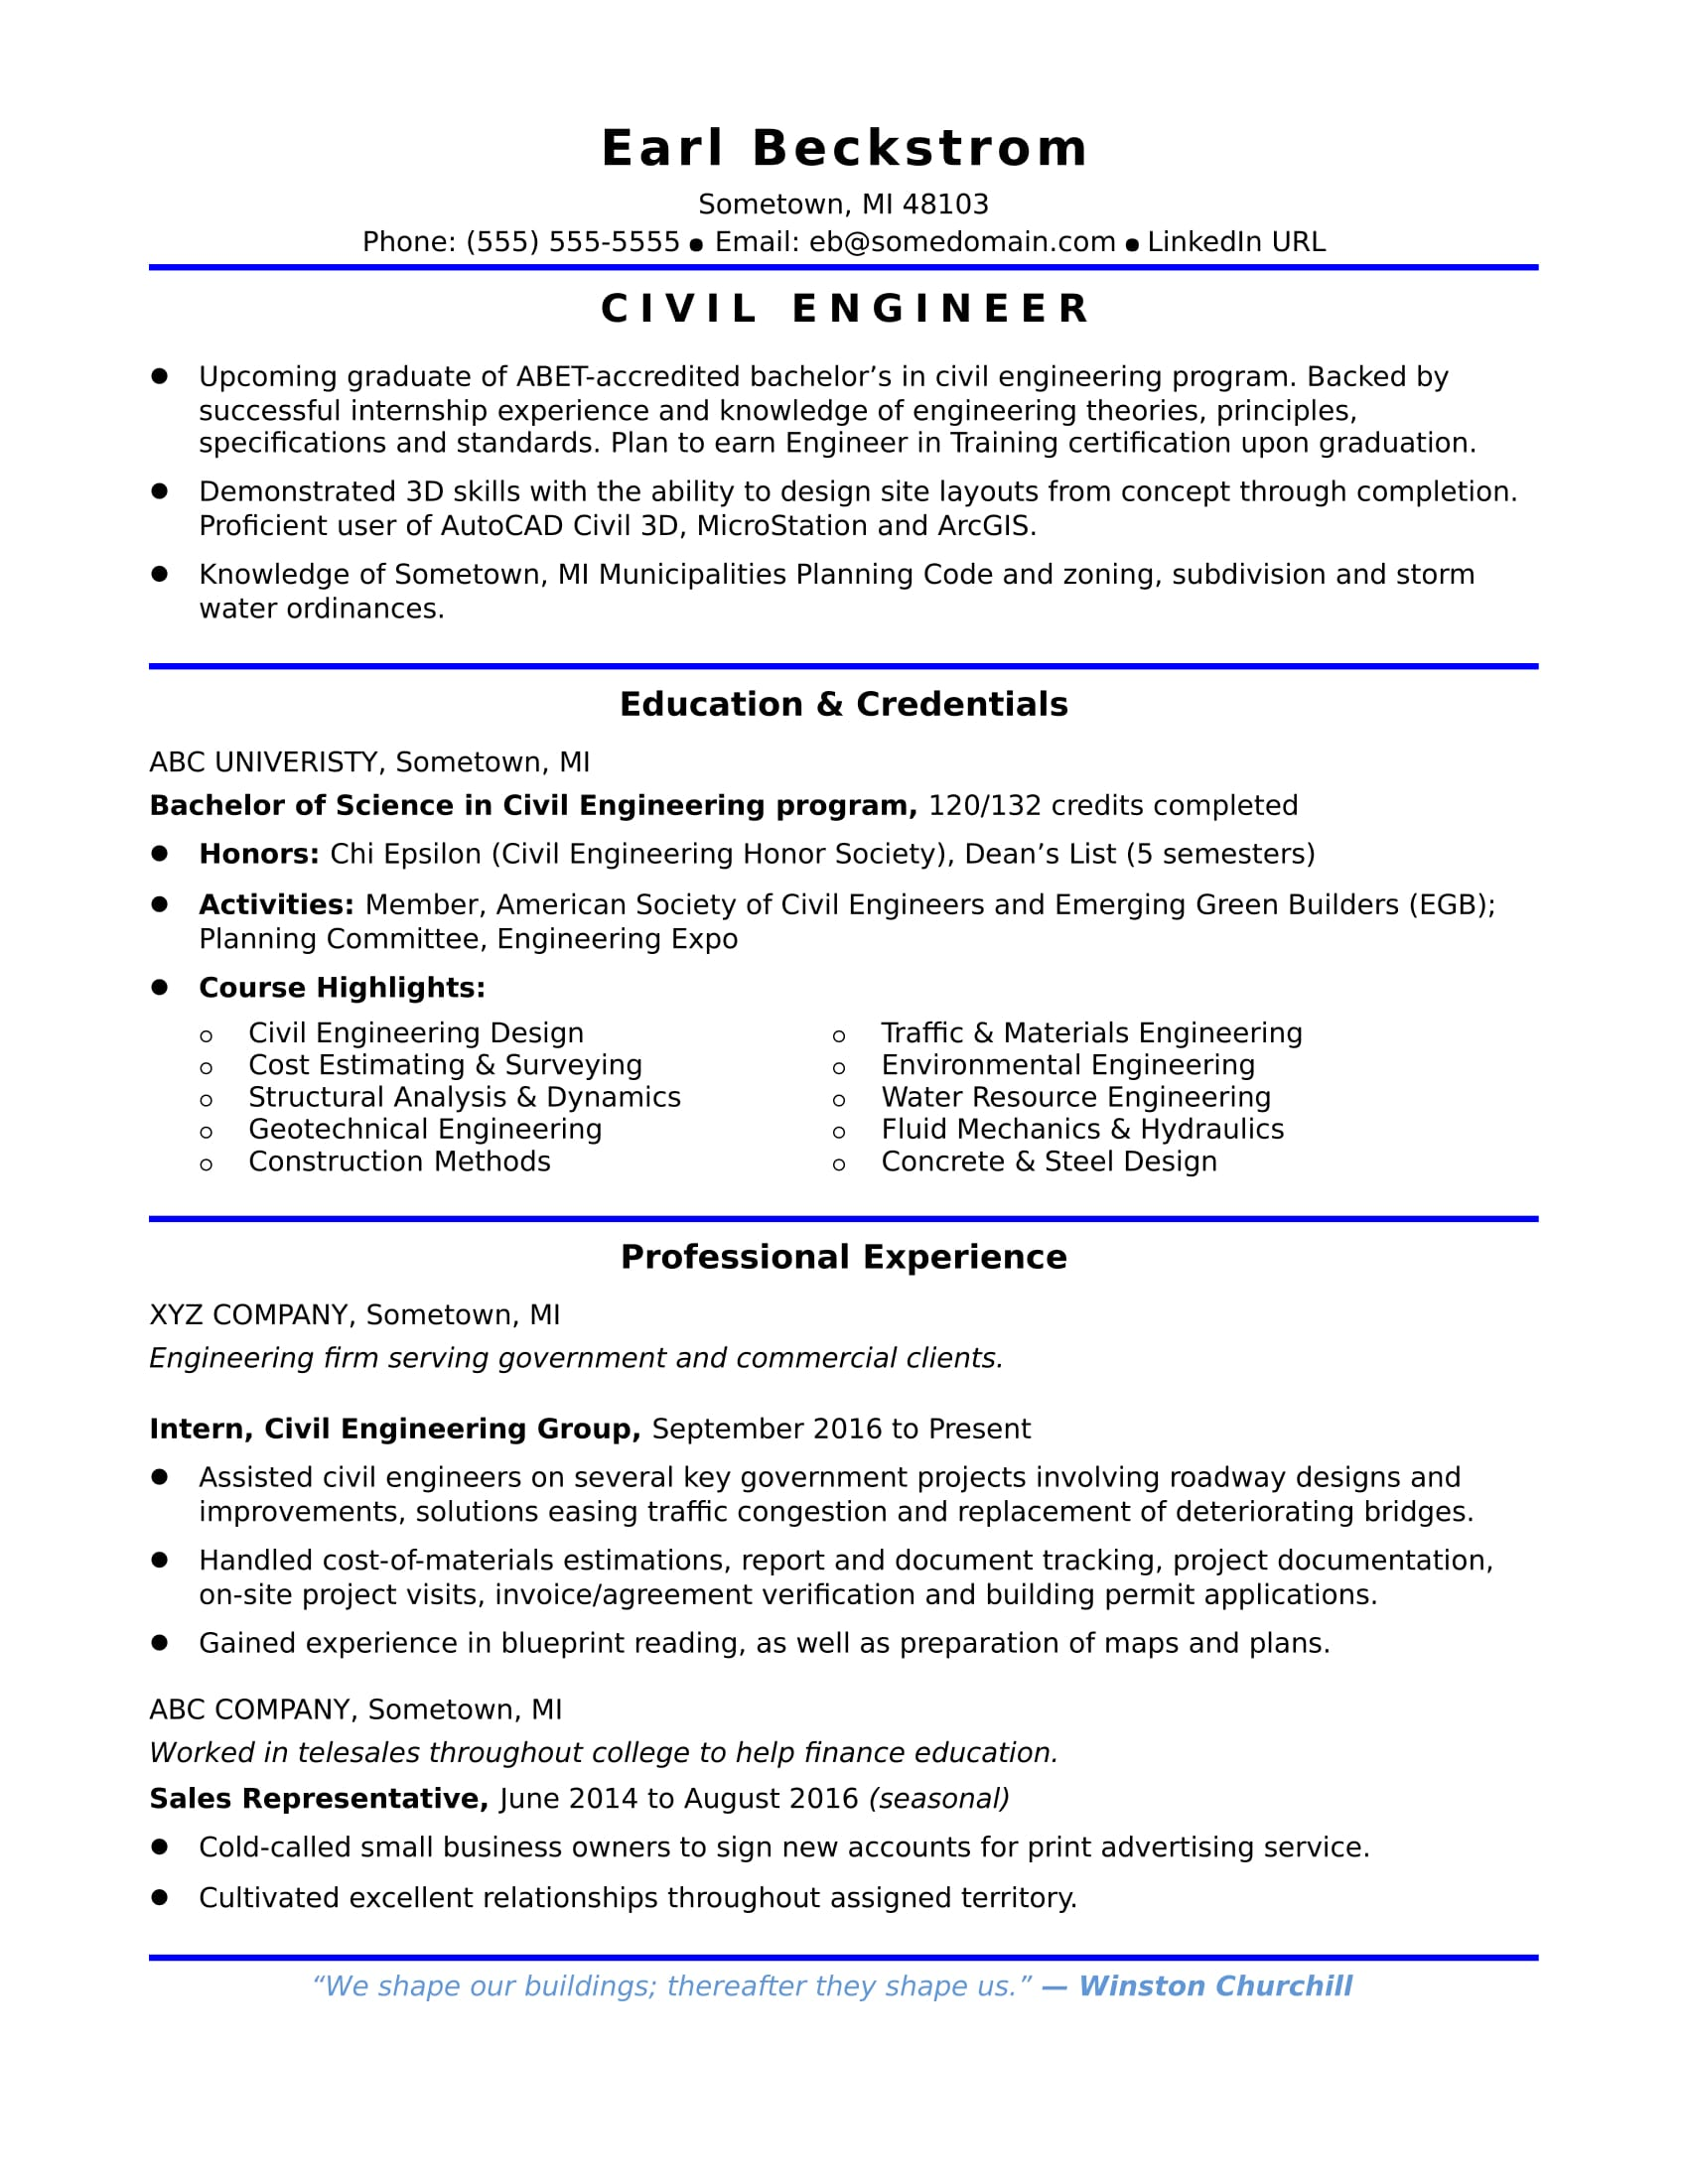 Sample Resume for an EntryLevel Civil Engineer   Monster